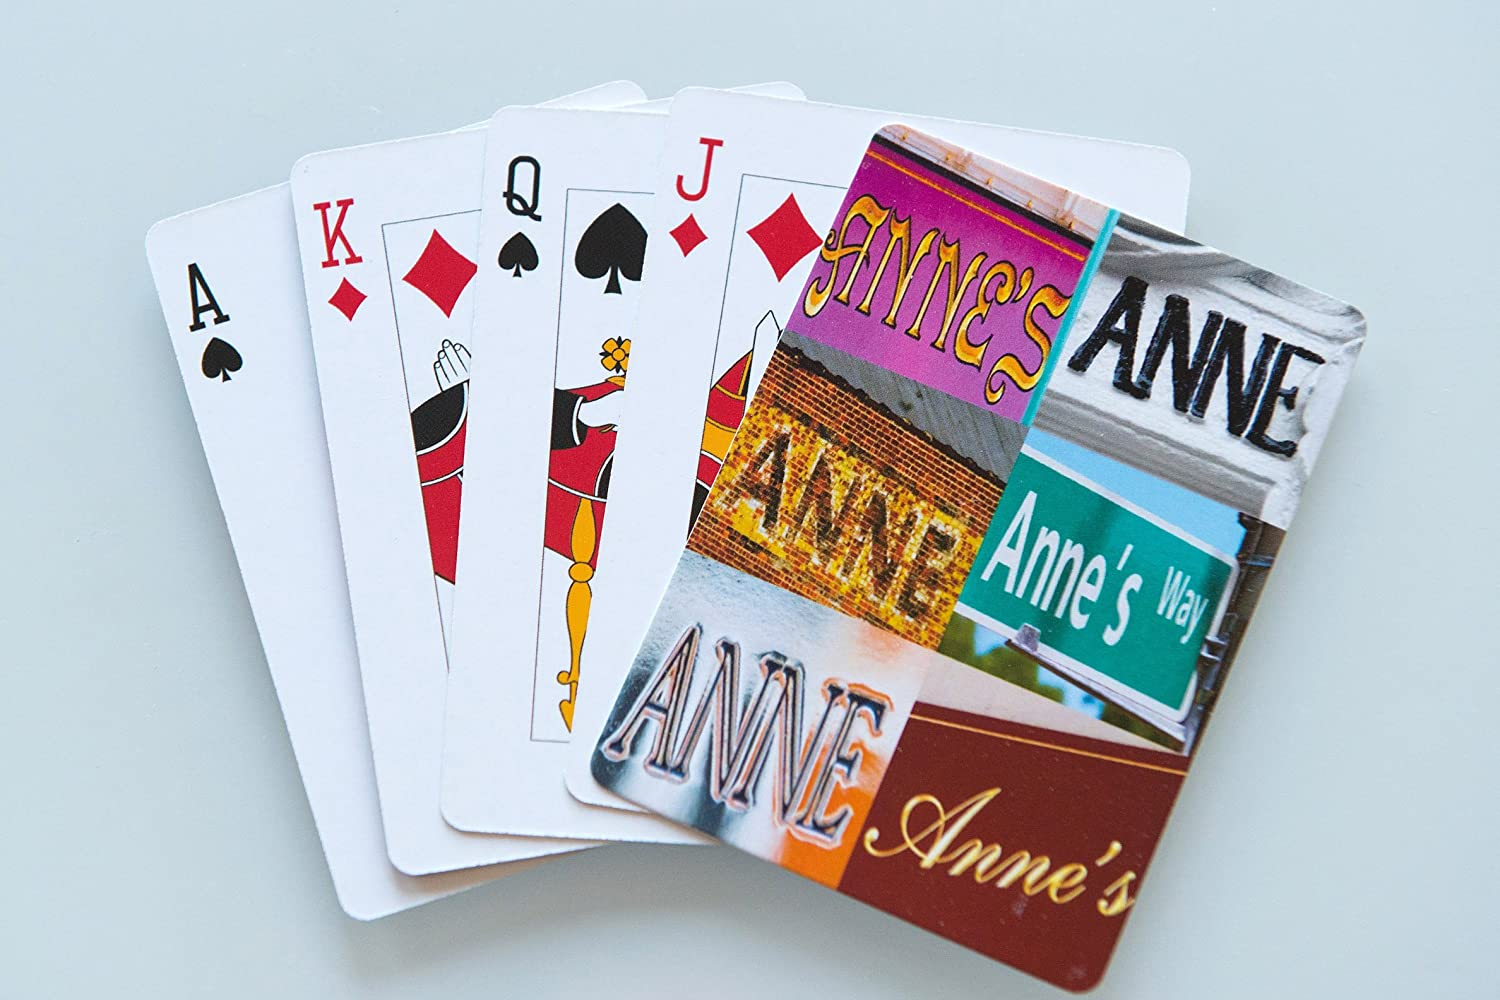 ANNE Personalized Playing Cards featuring photos of actual signs SignYourName PC-ANNEX